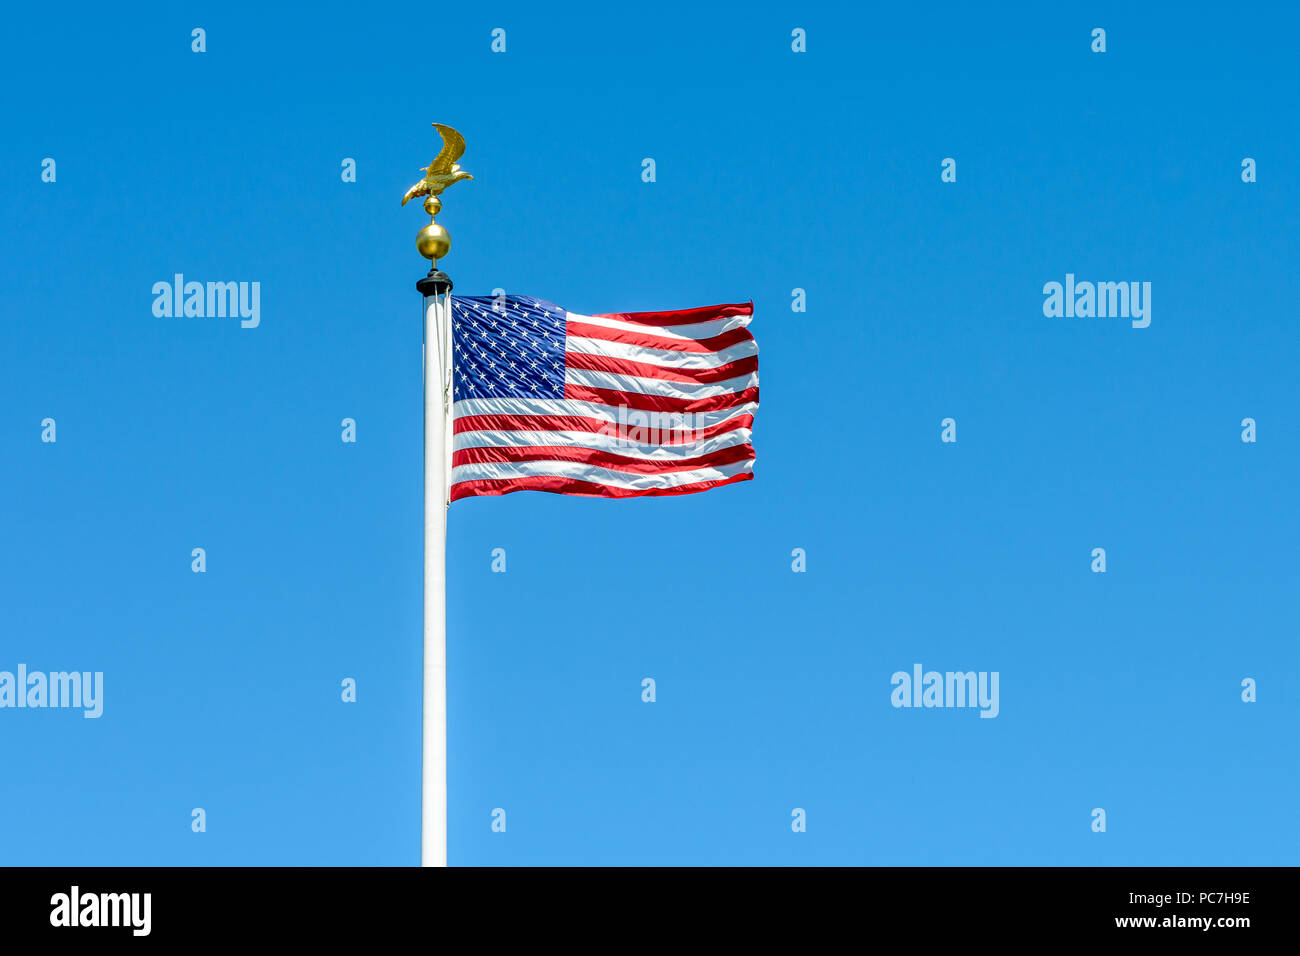 The flag of the United States of America blowing in the wind at full-mast on a pole topped with a golden eagle on ball ornament against deep blue sky. - Stock Image